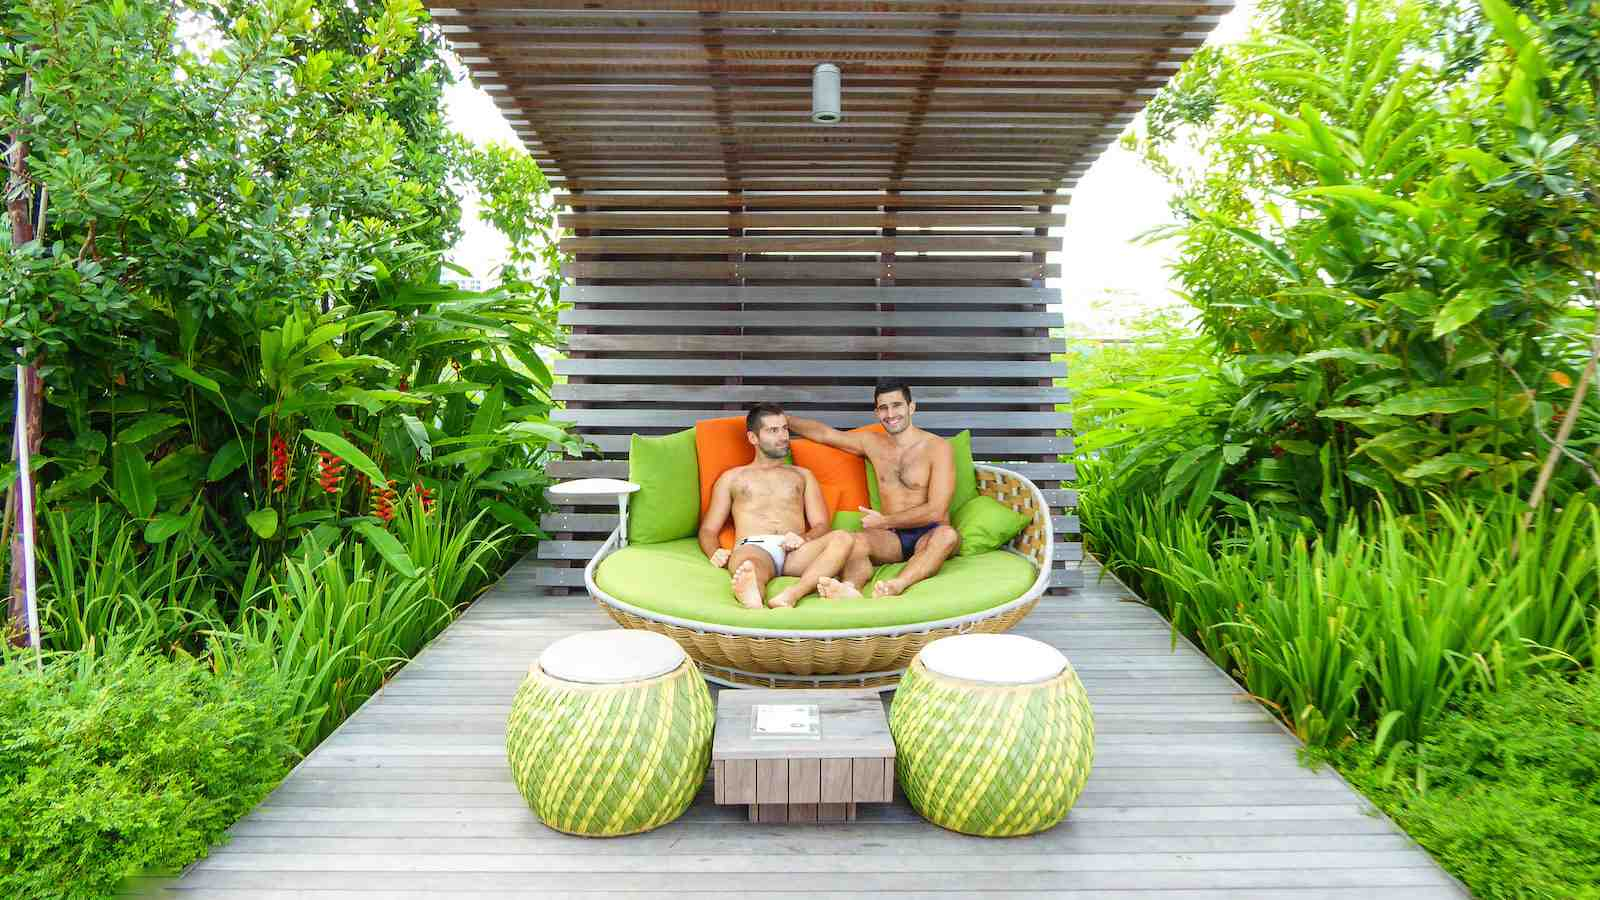 Hotel Jen is an excellent choice for gay travellers to Singapore who want to be close to the shopping district but also like to spend time beside the rooftop pool